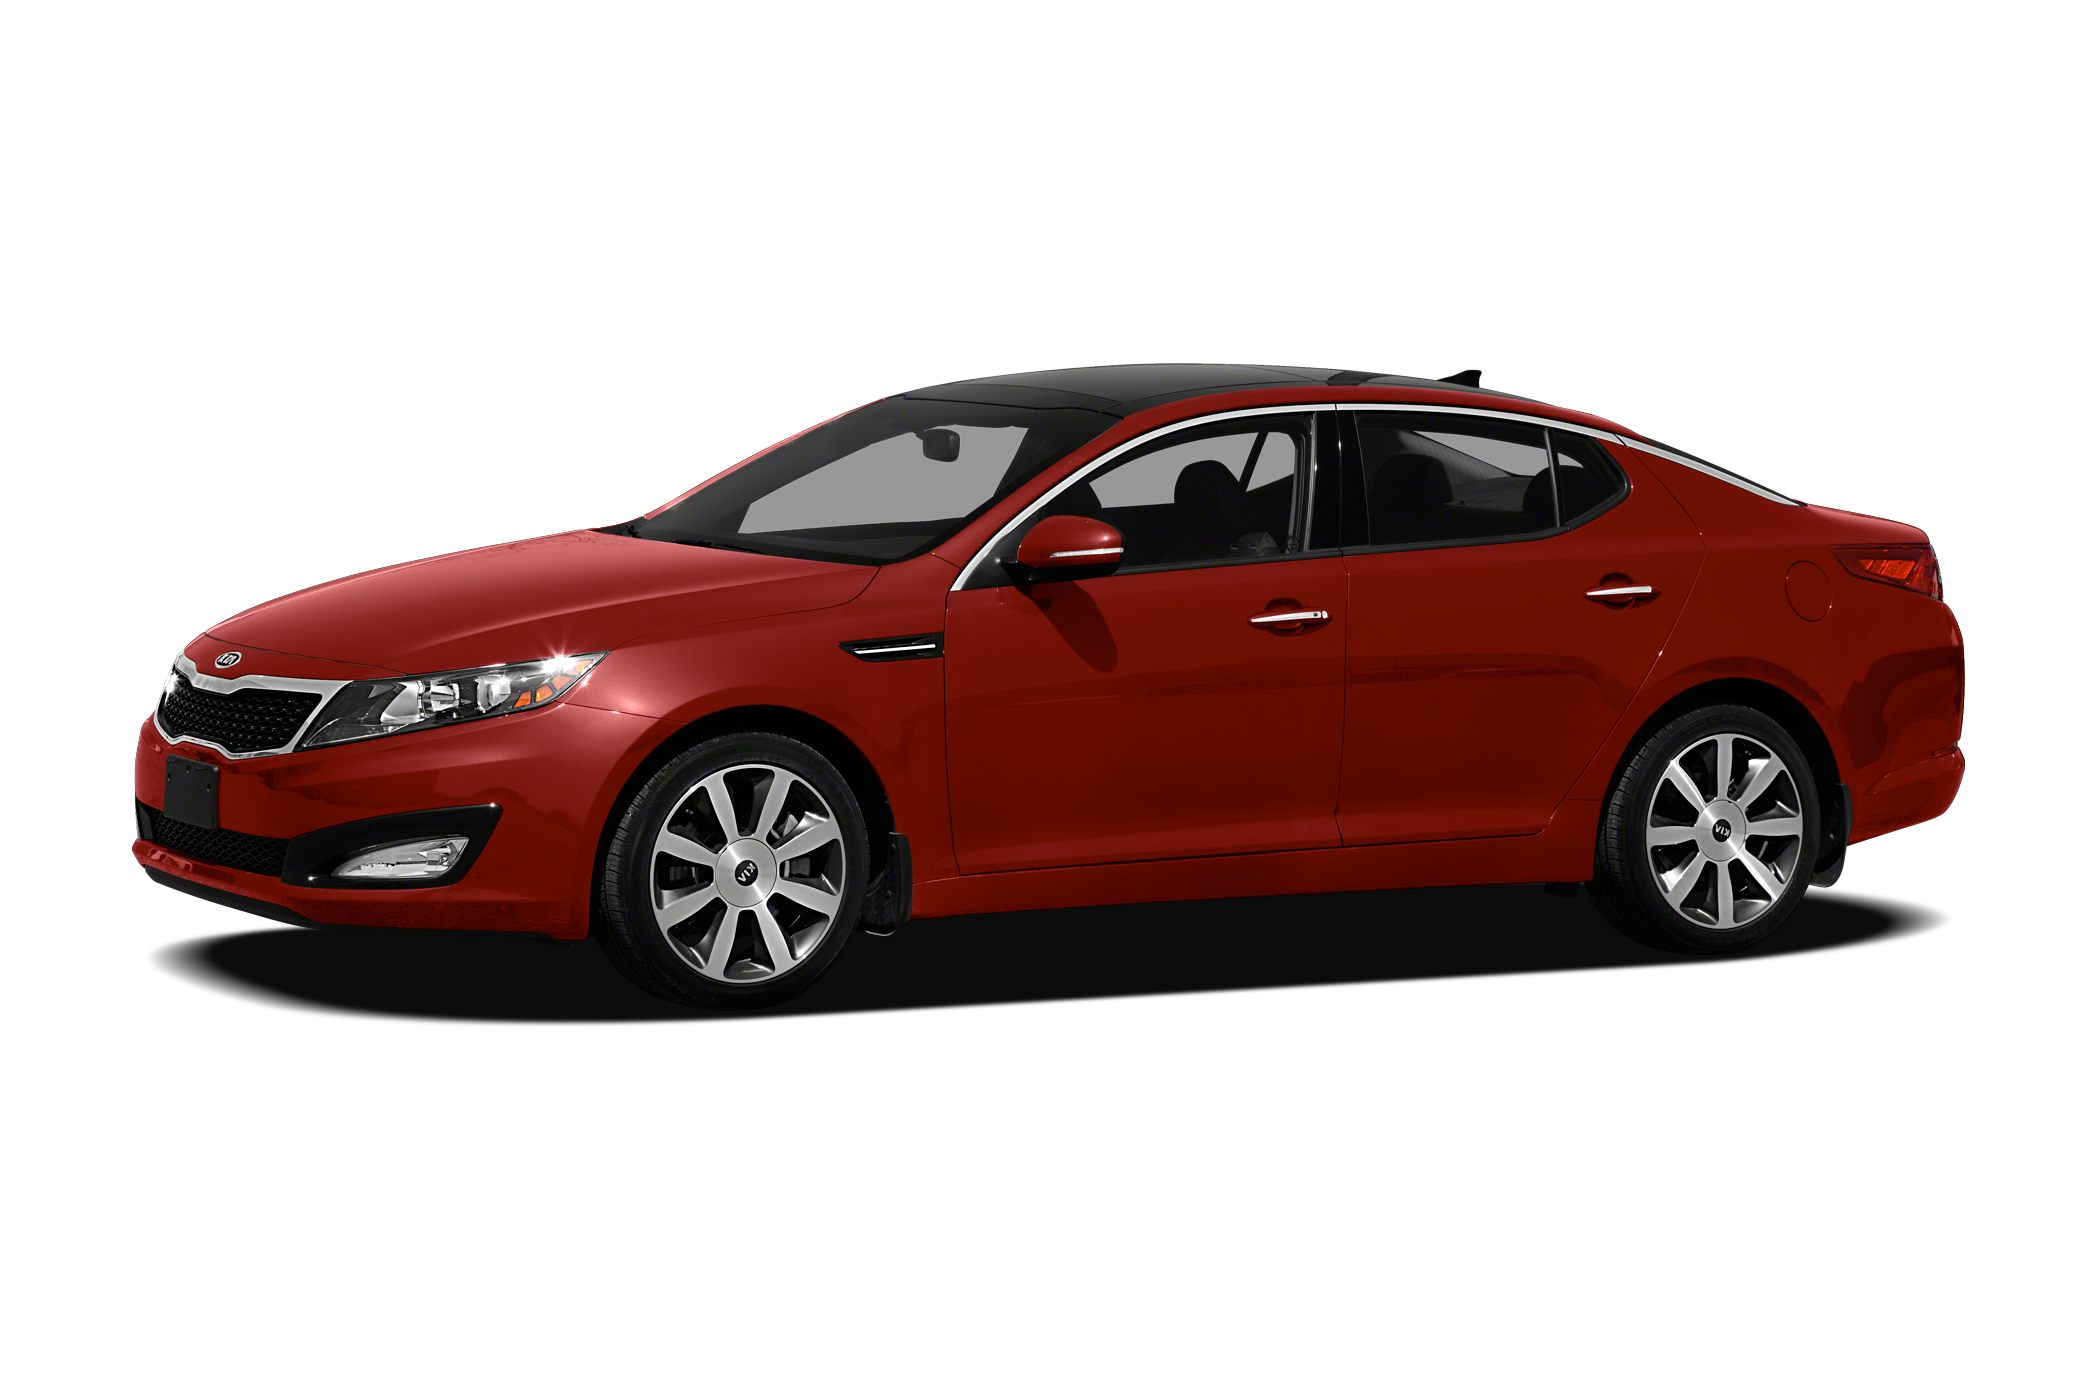 2012 Kia Optima LX Miles 59066Color Red Stock 17177 VIN 5XXGM4A75CG068660